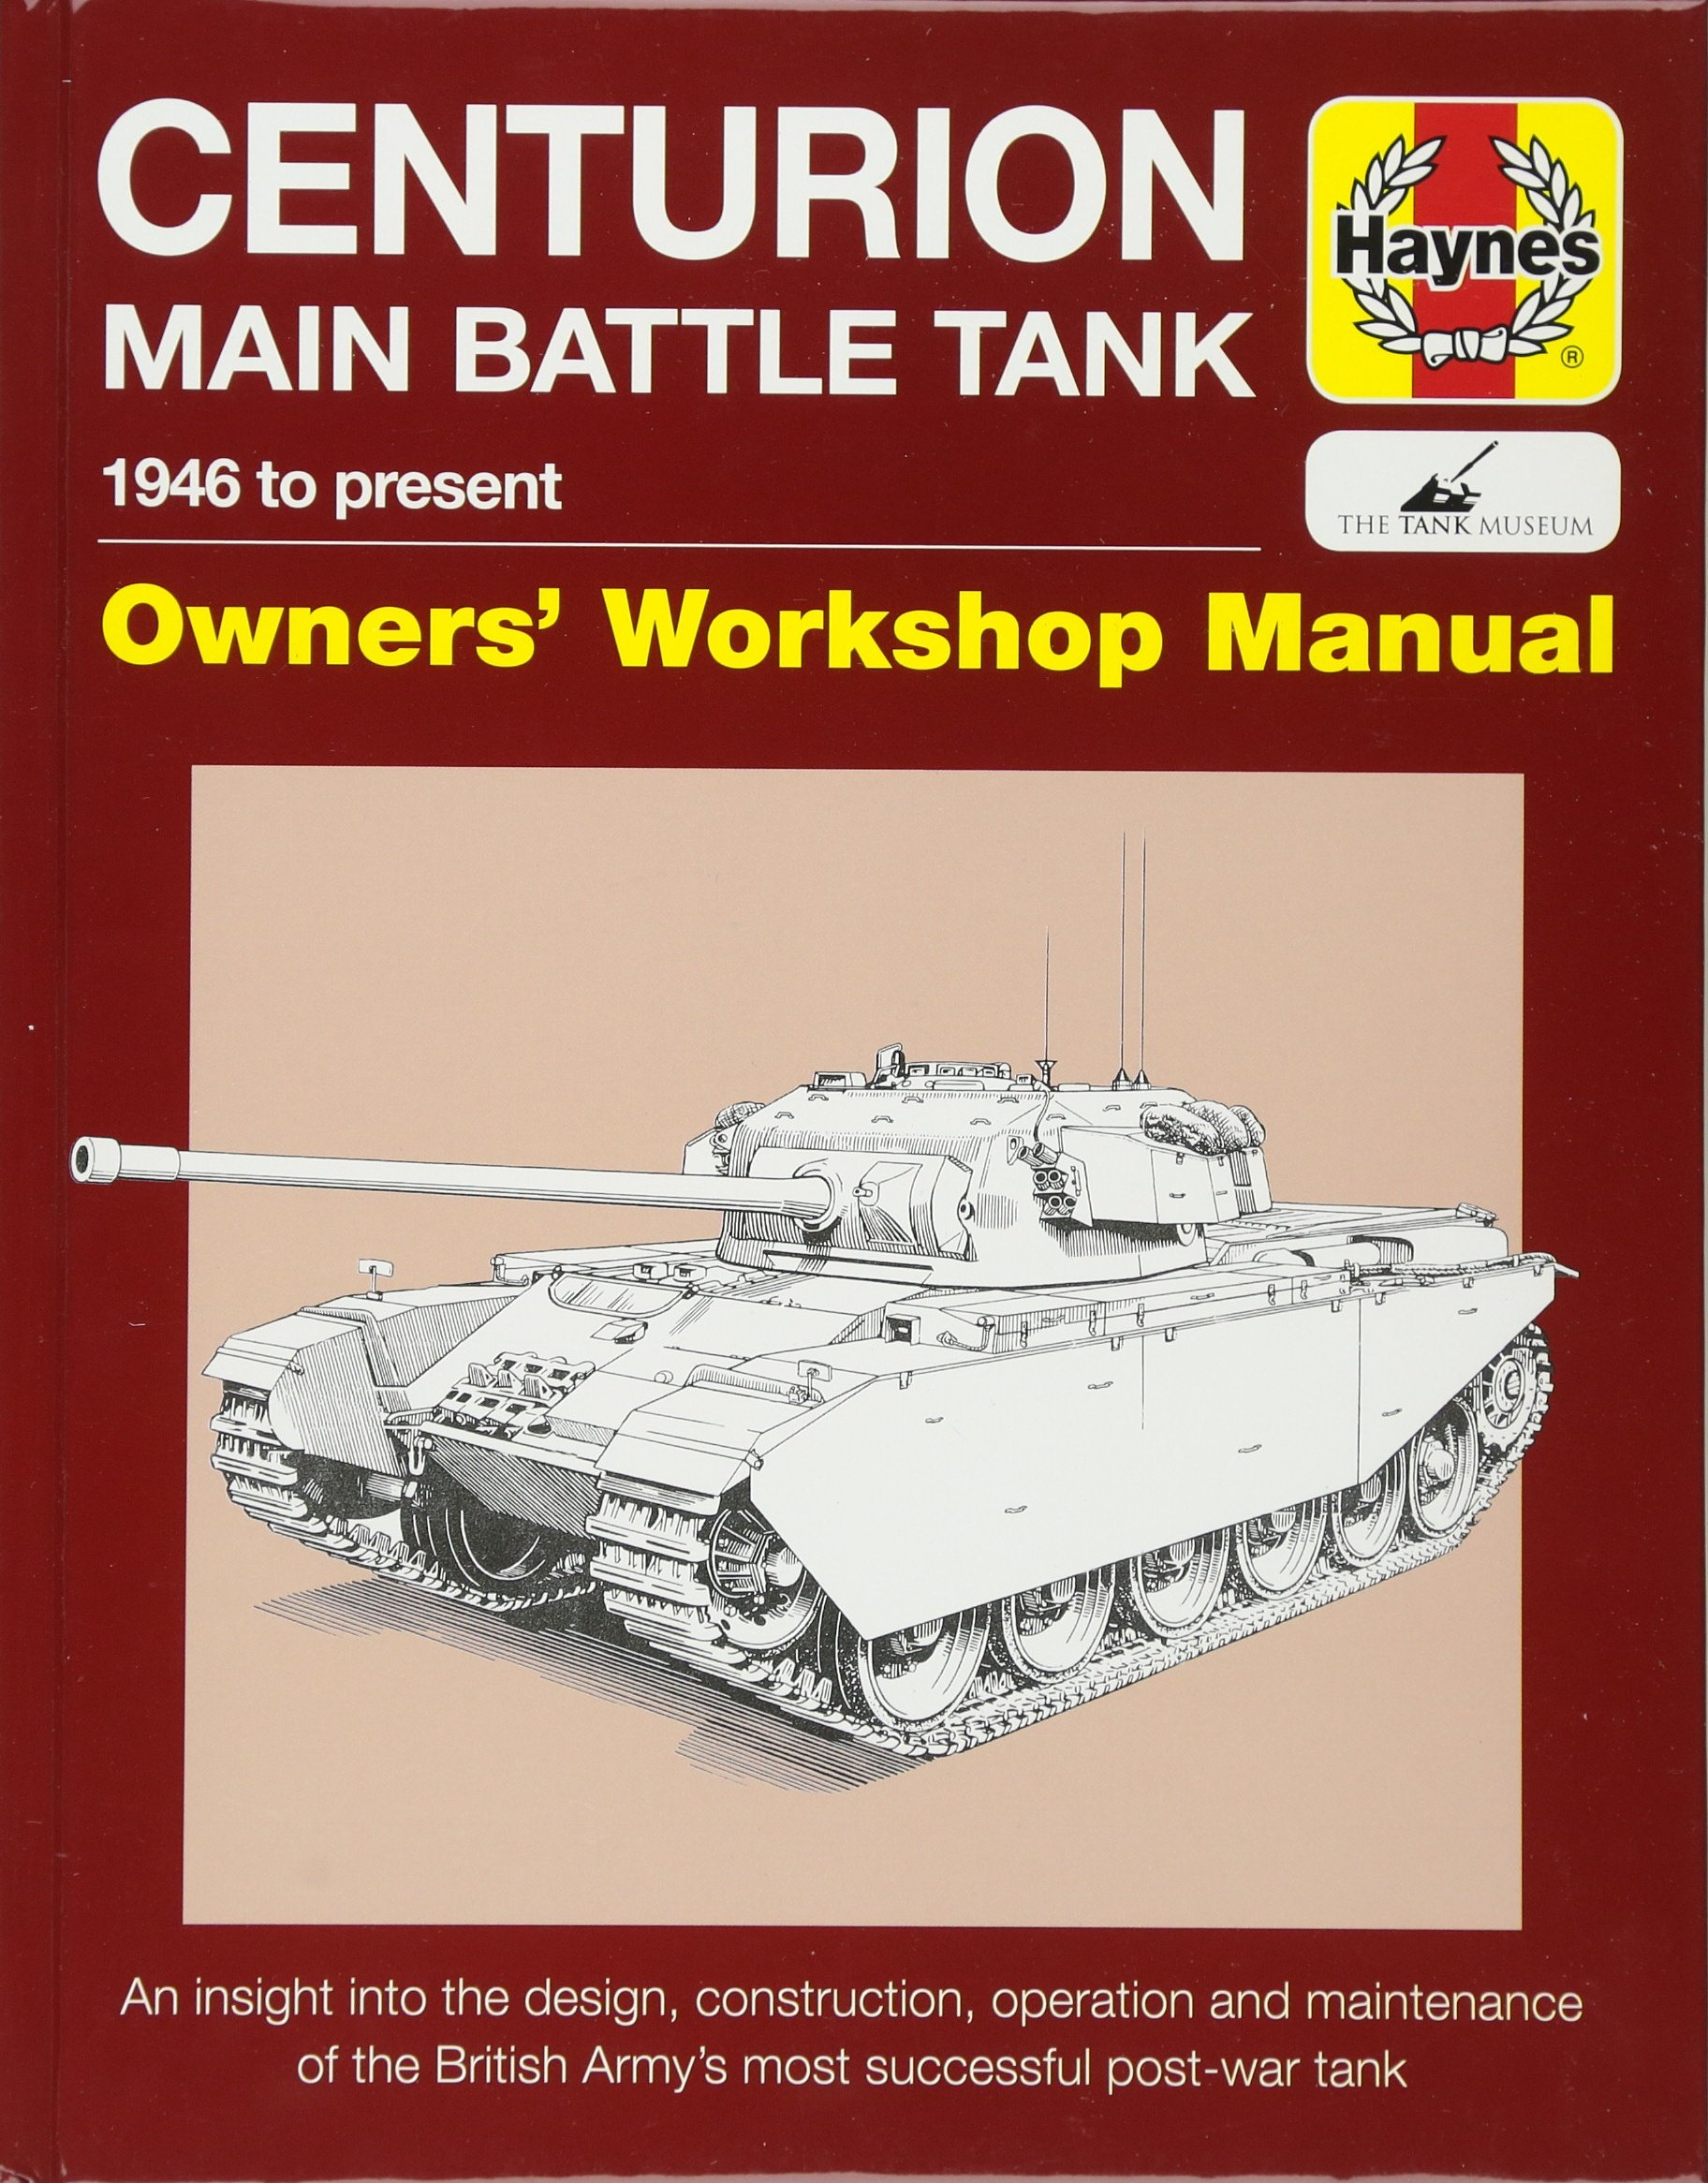 The Best Main Battle Tank See Reviews And Compare Merkava Schematic Centurion Workshop Product Image